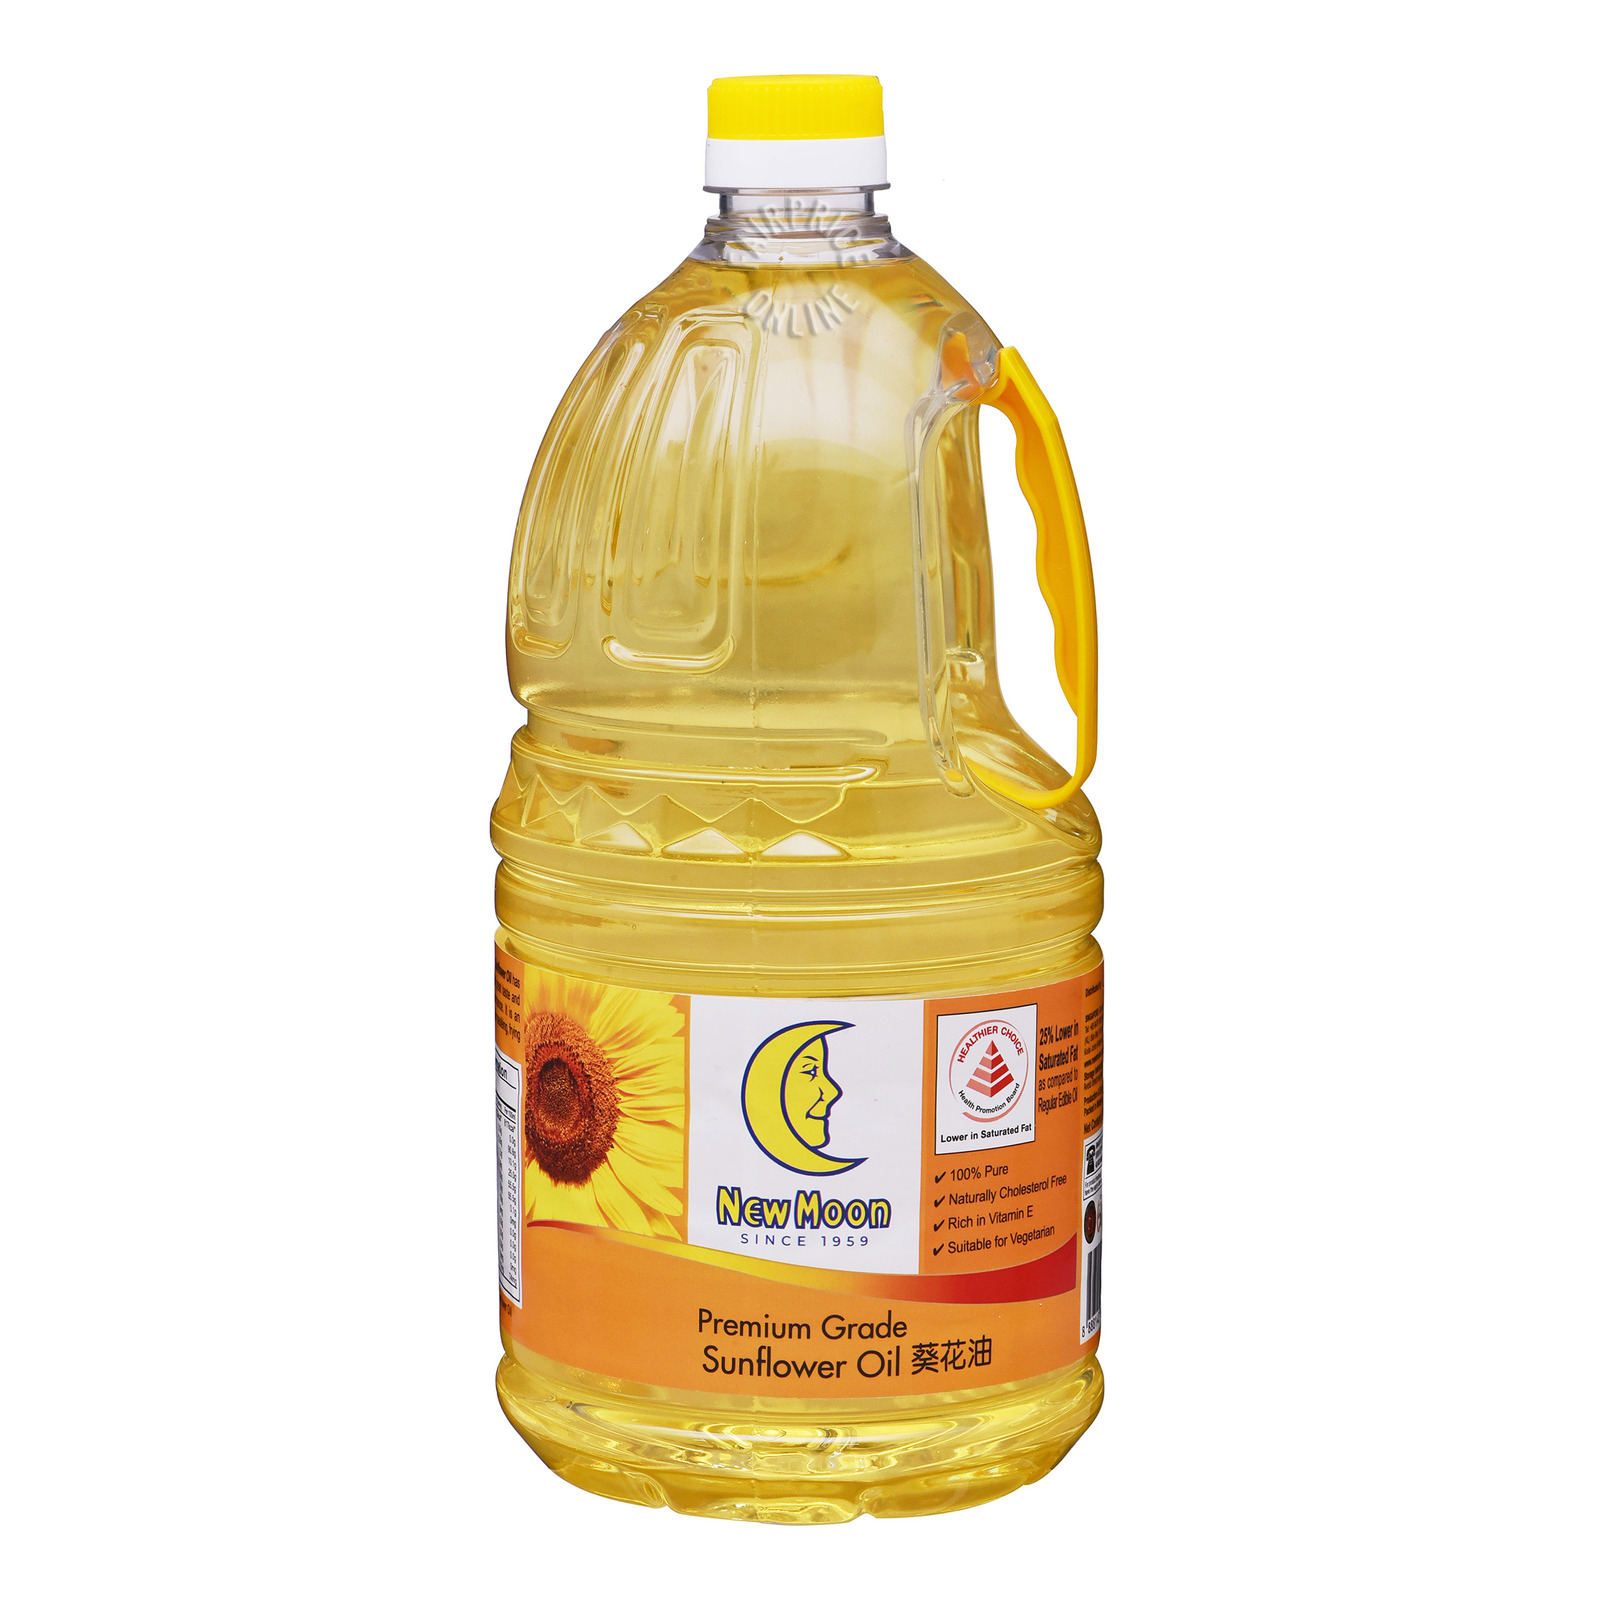 New Moon Premium Grade Sunflower Oil